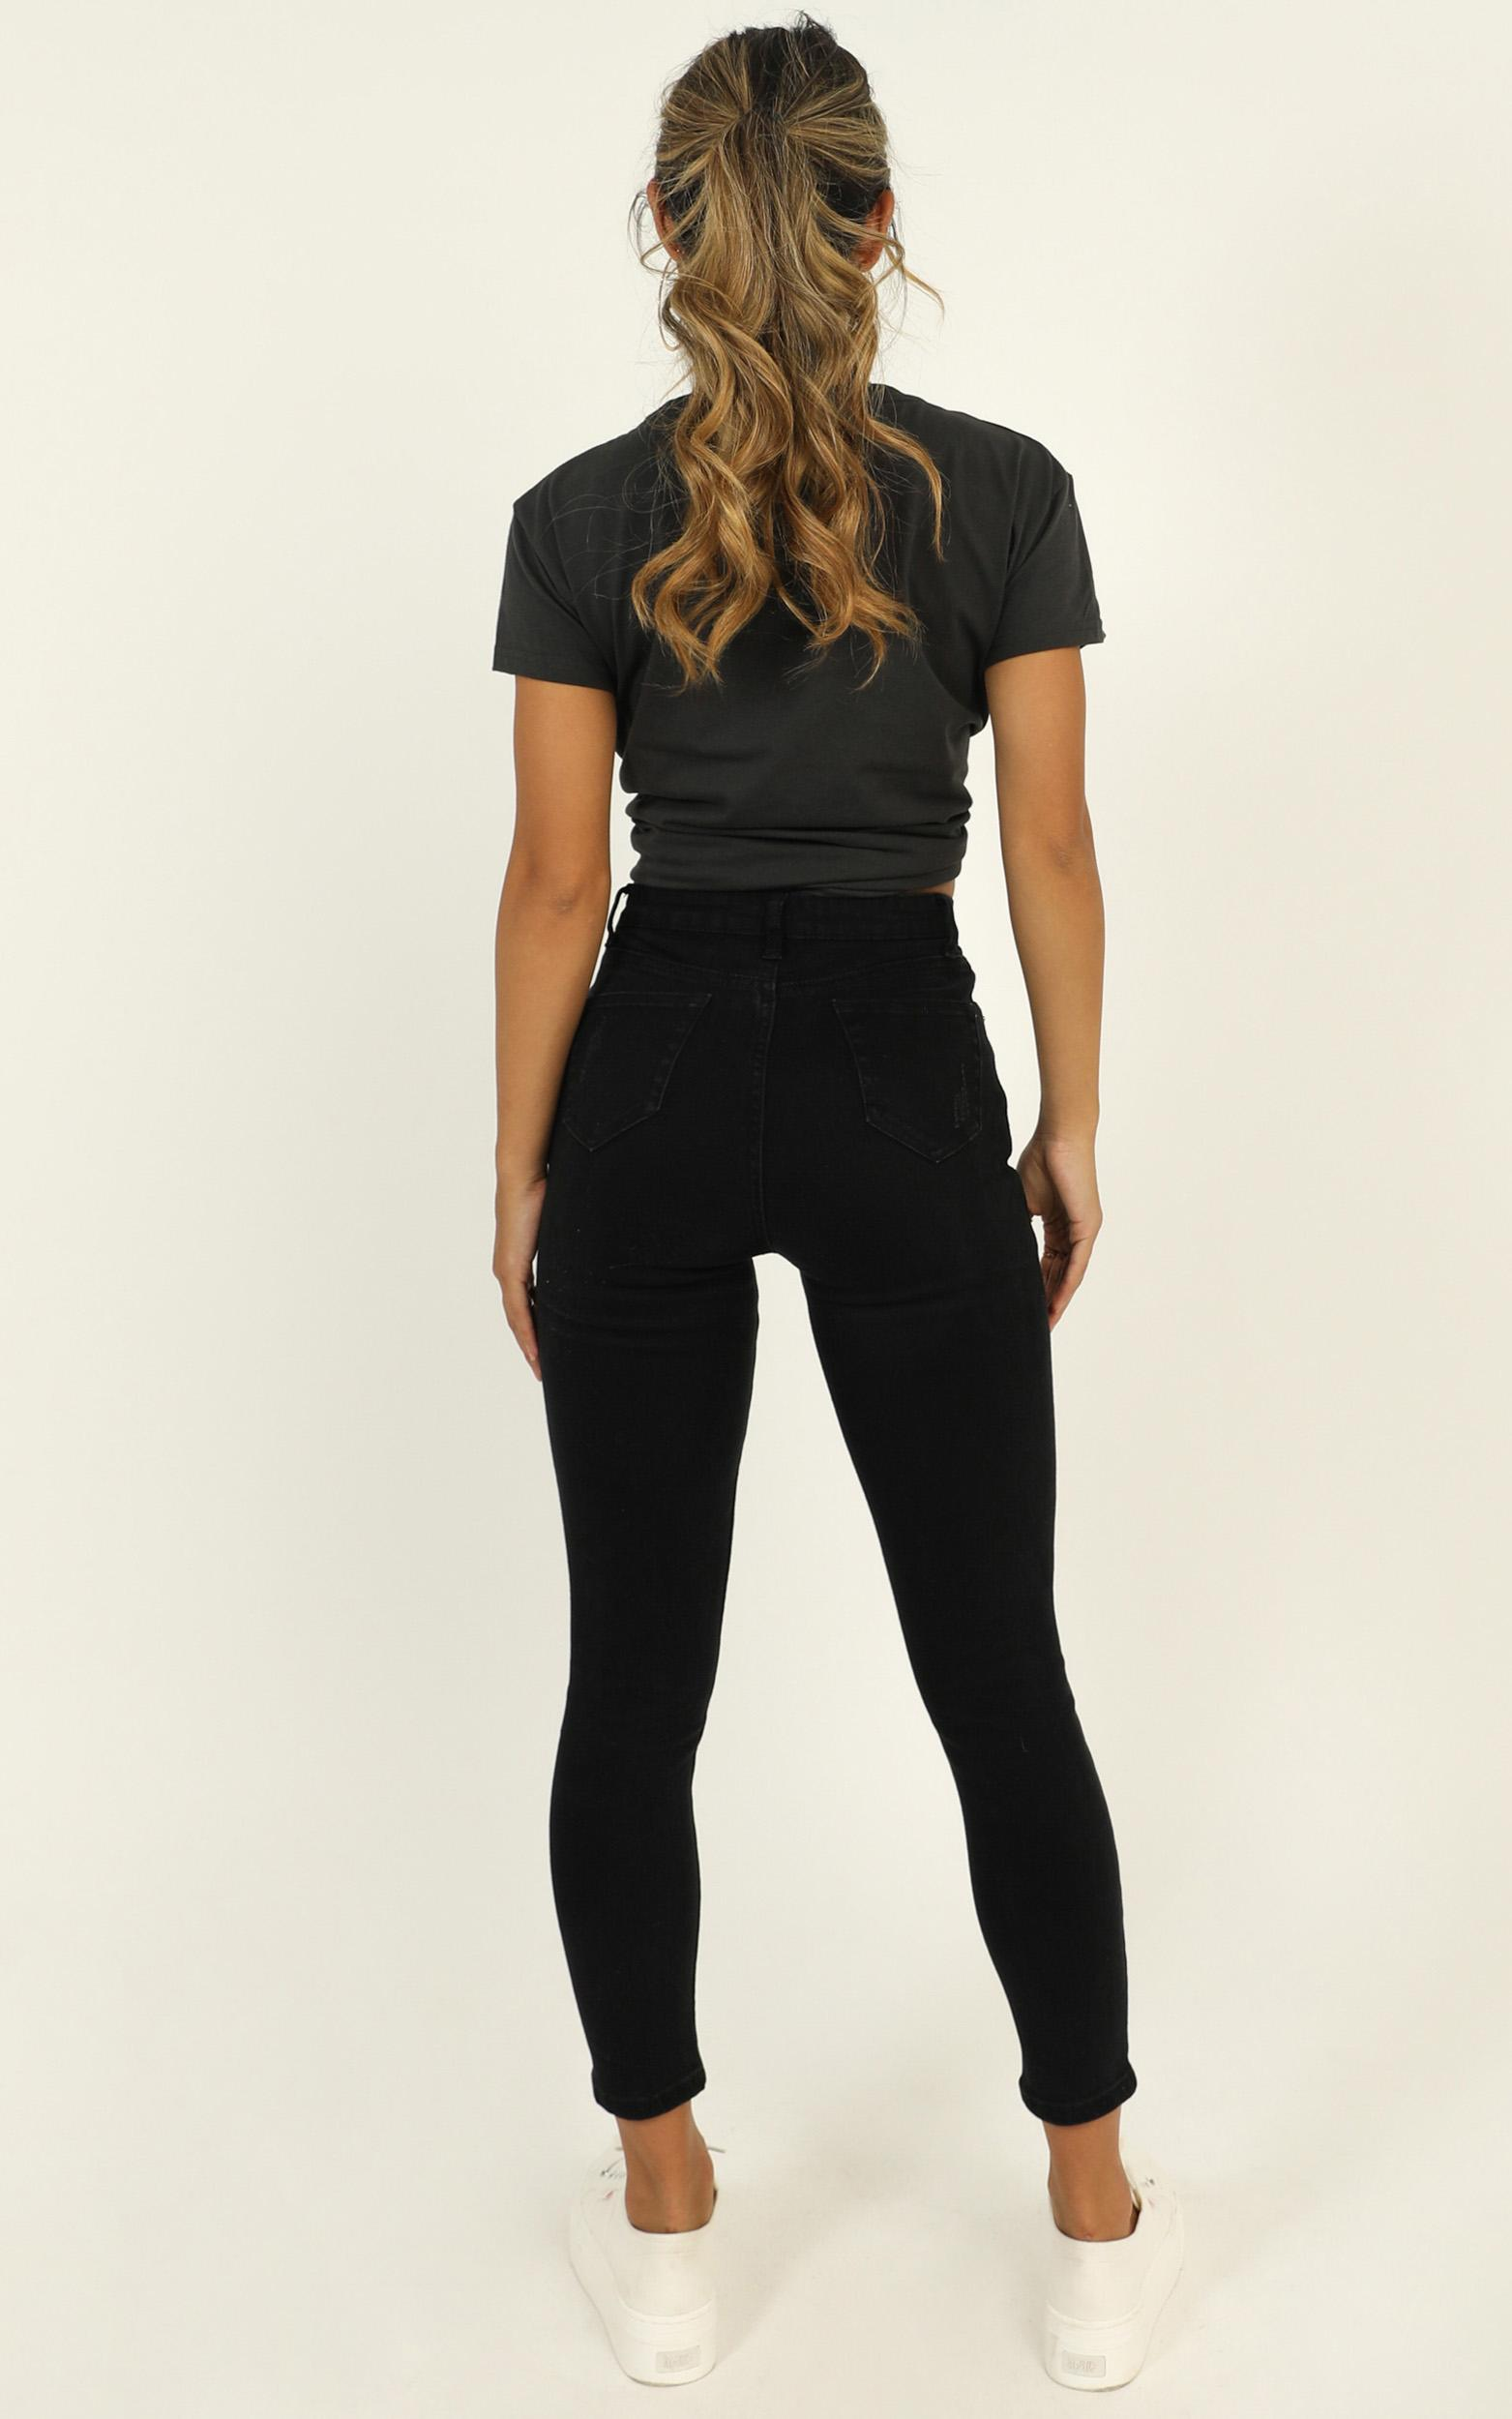 Tammy Skinny Jeans in Black Denim - 6 (XS), Black, hi-res image number null